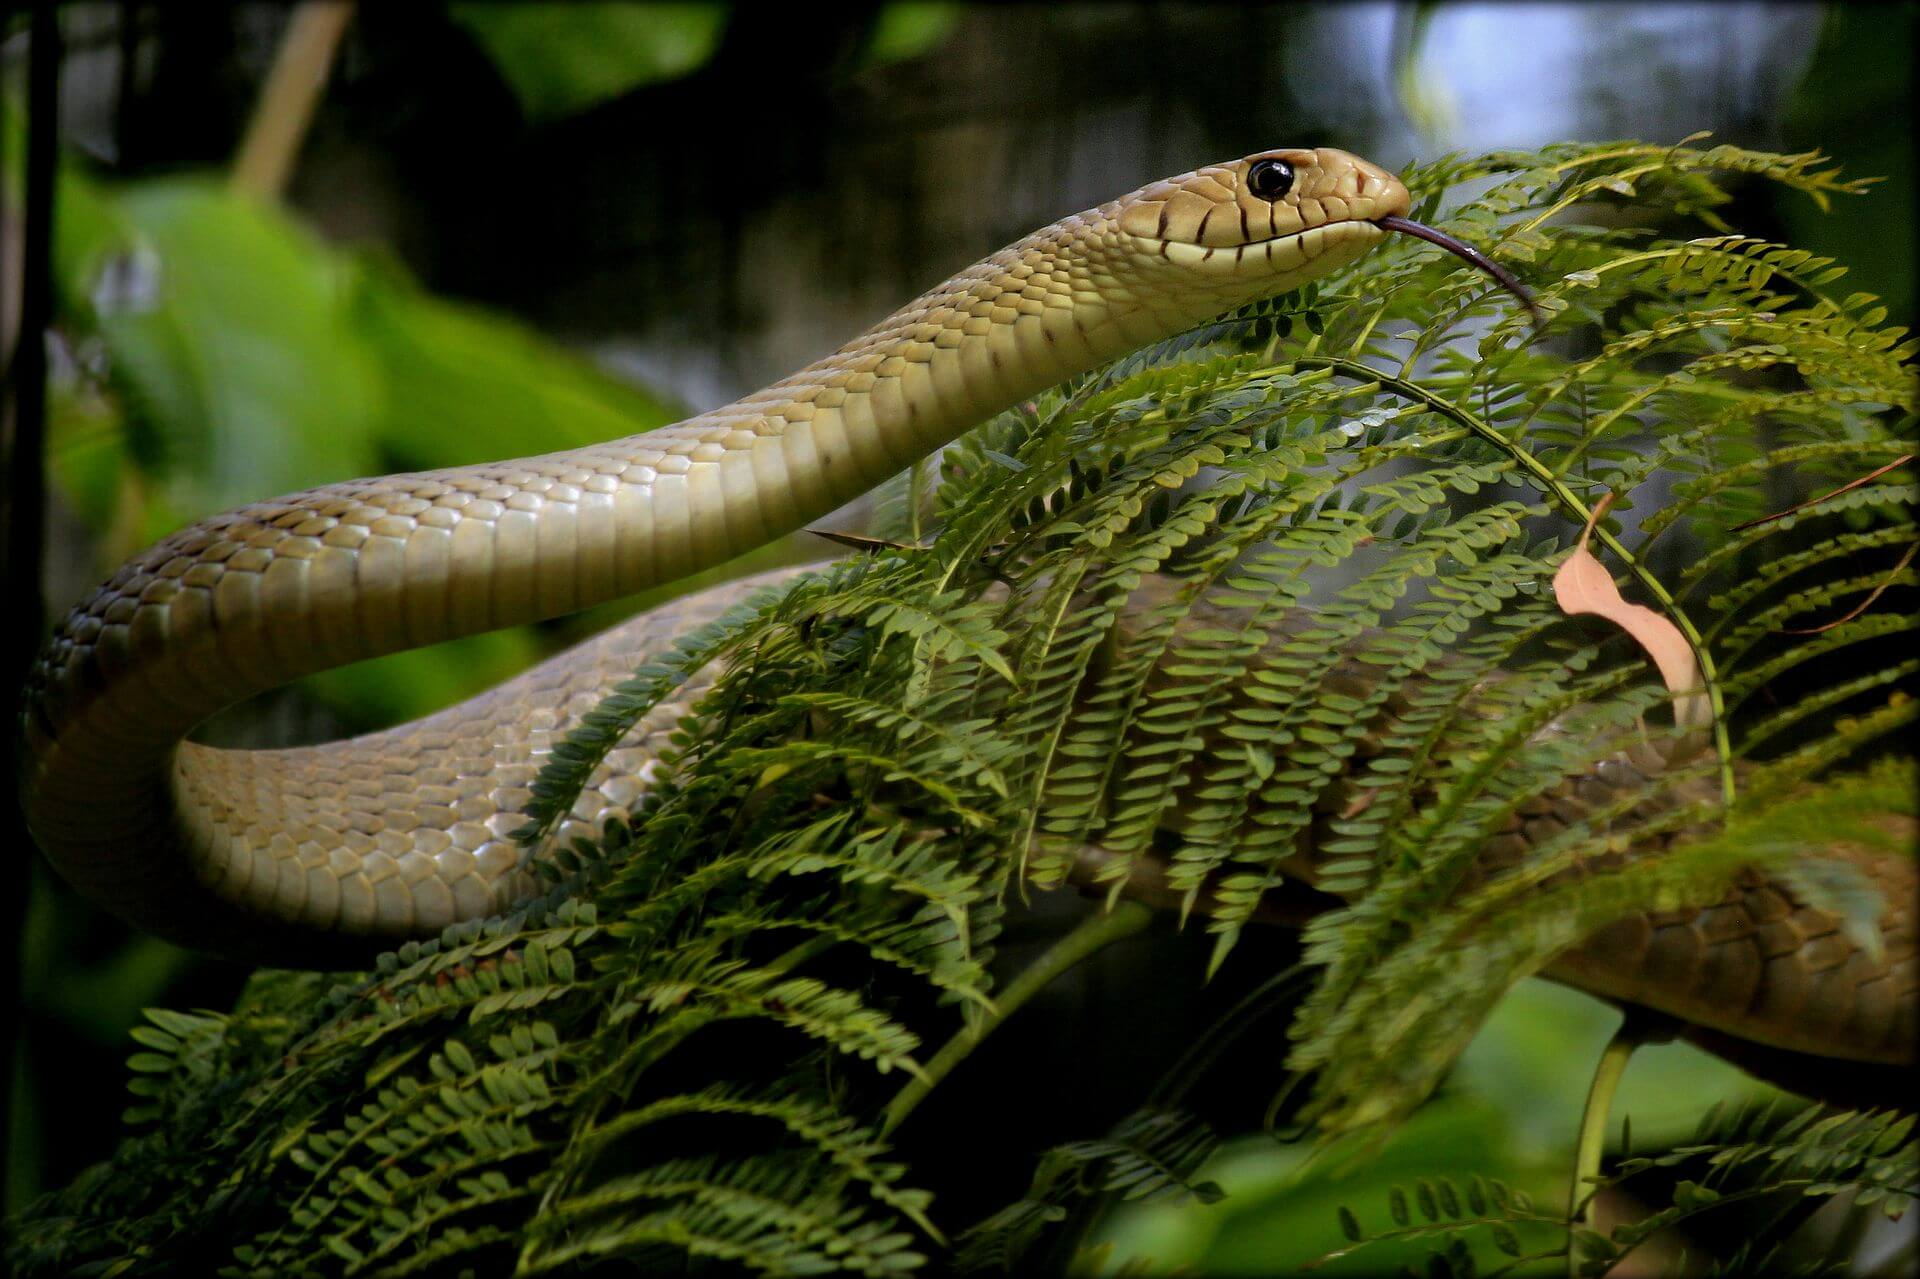 //commons.wikimedia.org/wiki/Category:Ptyas_mucosa#/media/File:Common_India_Rat_Snake.jpg